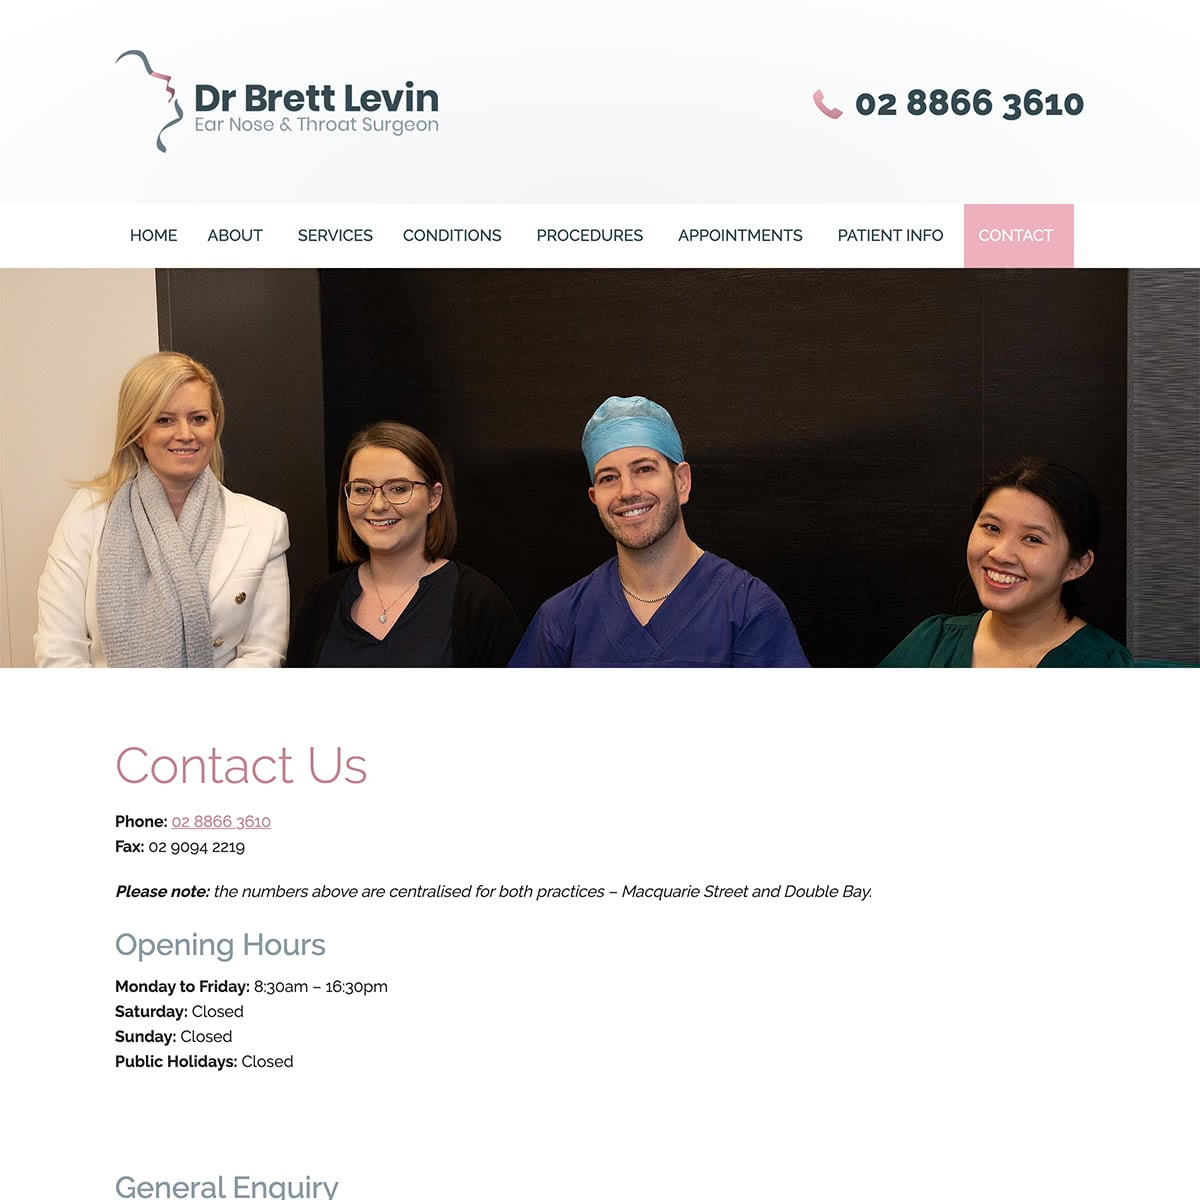 Dr Brett Levin - Contact Us